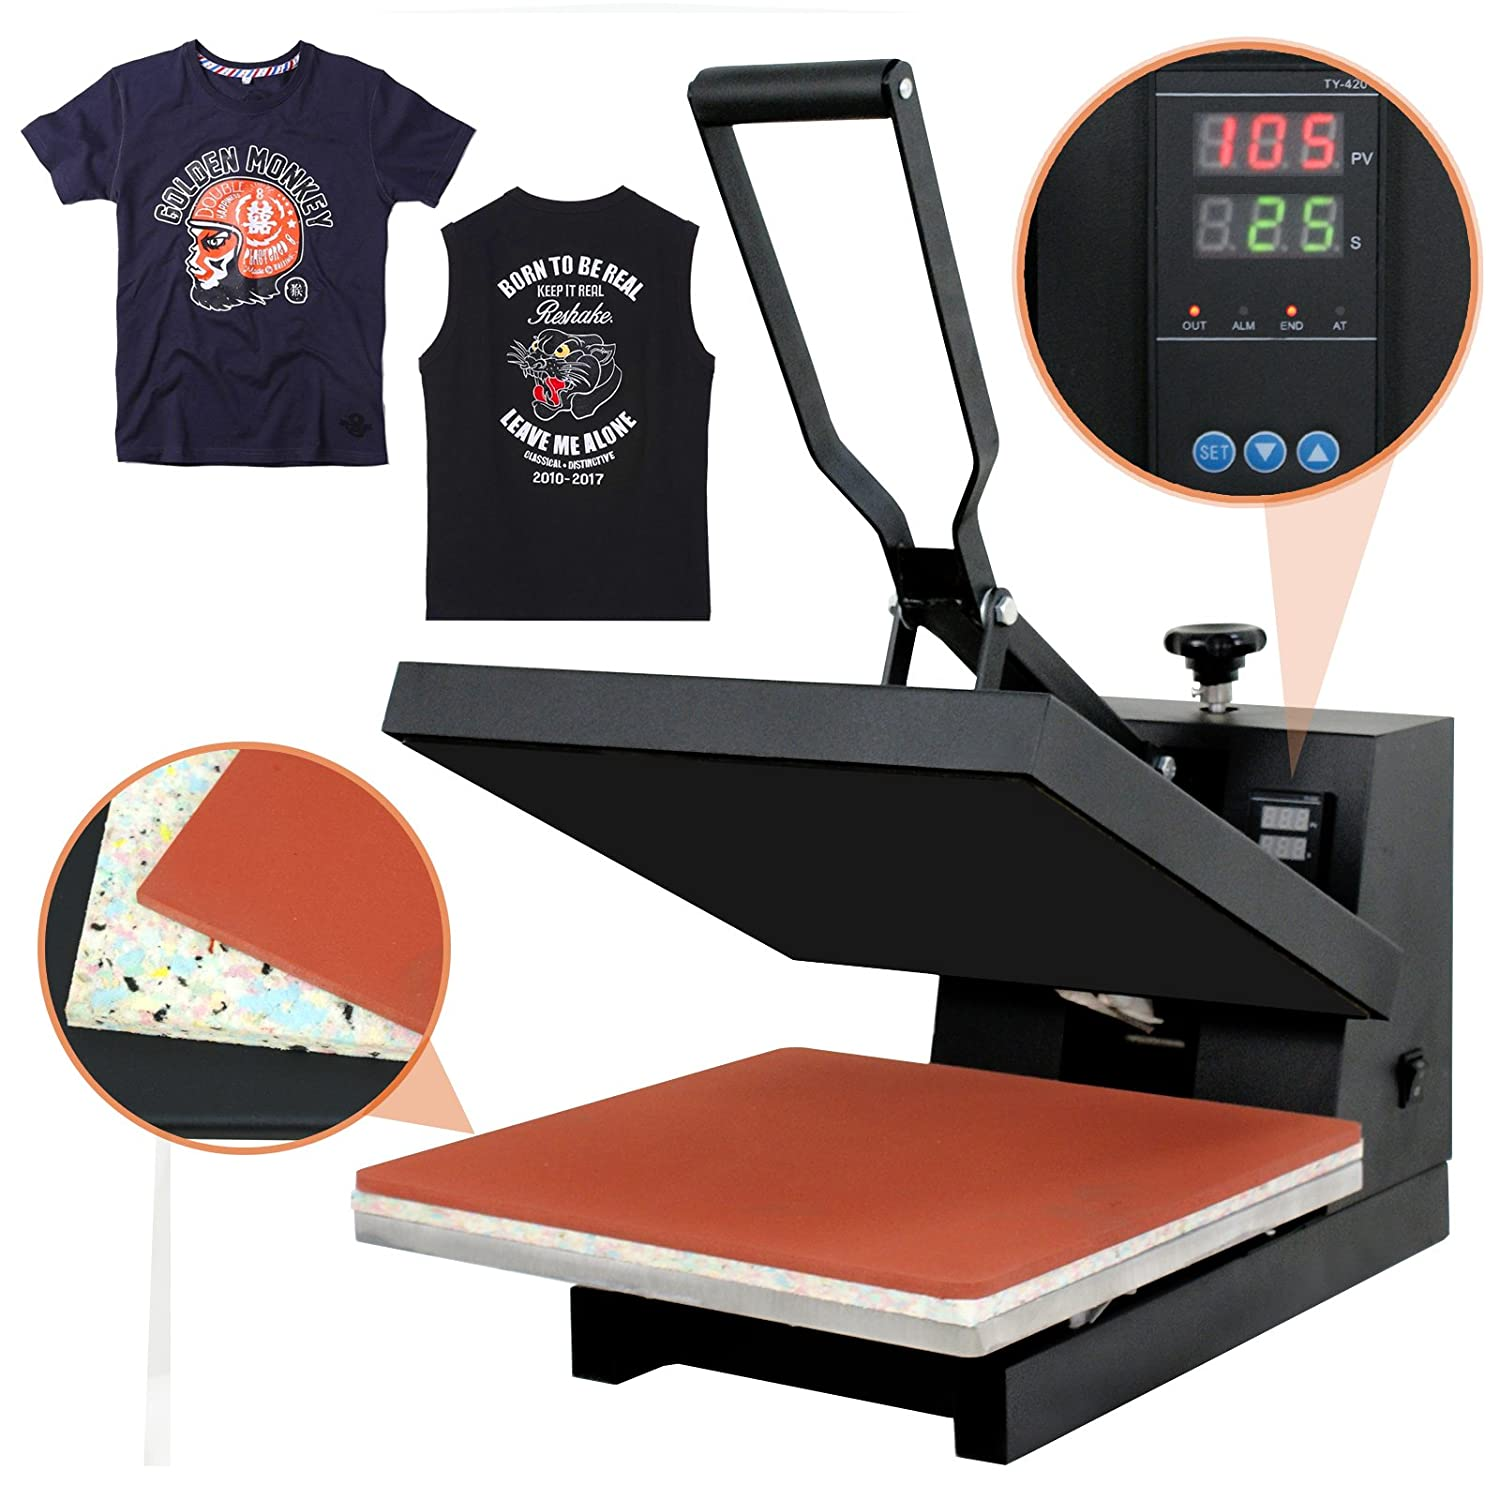 Super Deal PRO 15 X 15 Digital Heat Press Clamshell Sublimation Transfer Machine for T-Shirt